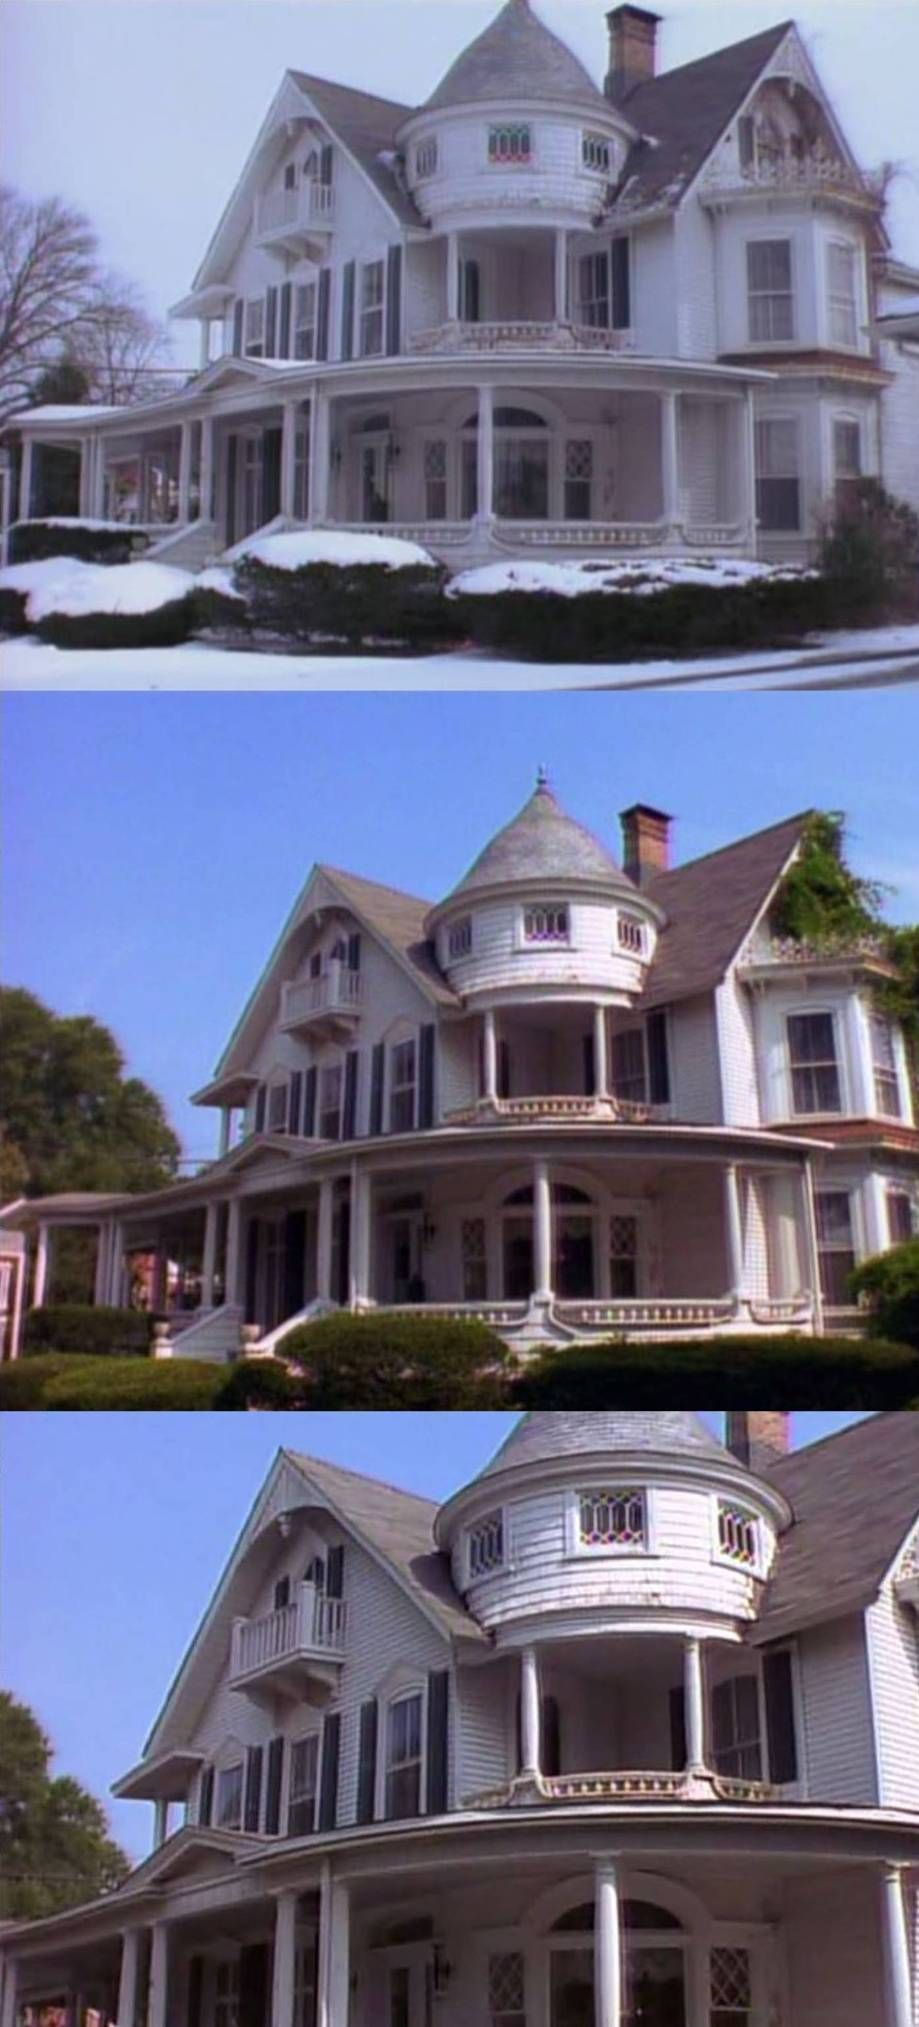 Spellmans House From Sabrina The Teenage Witch Home Exterior